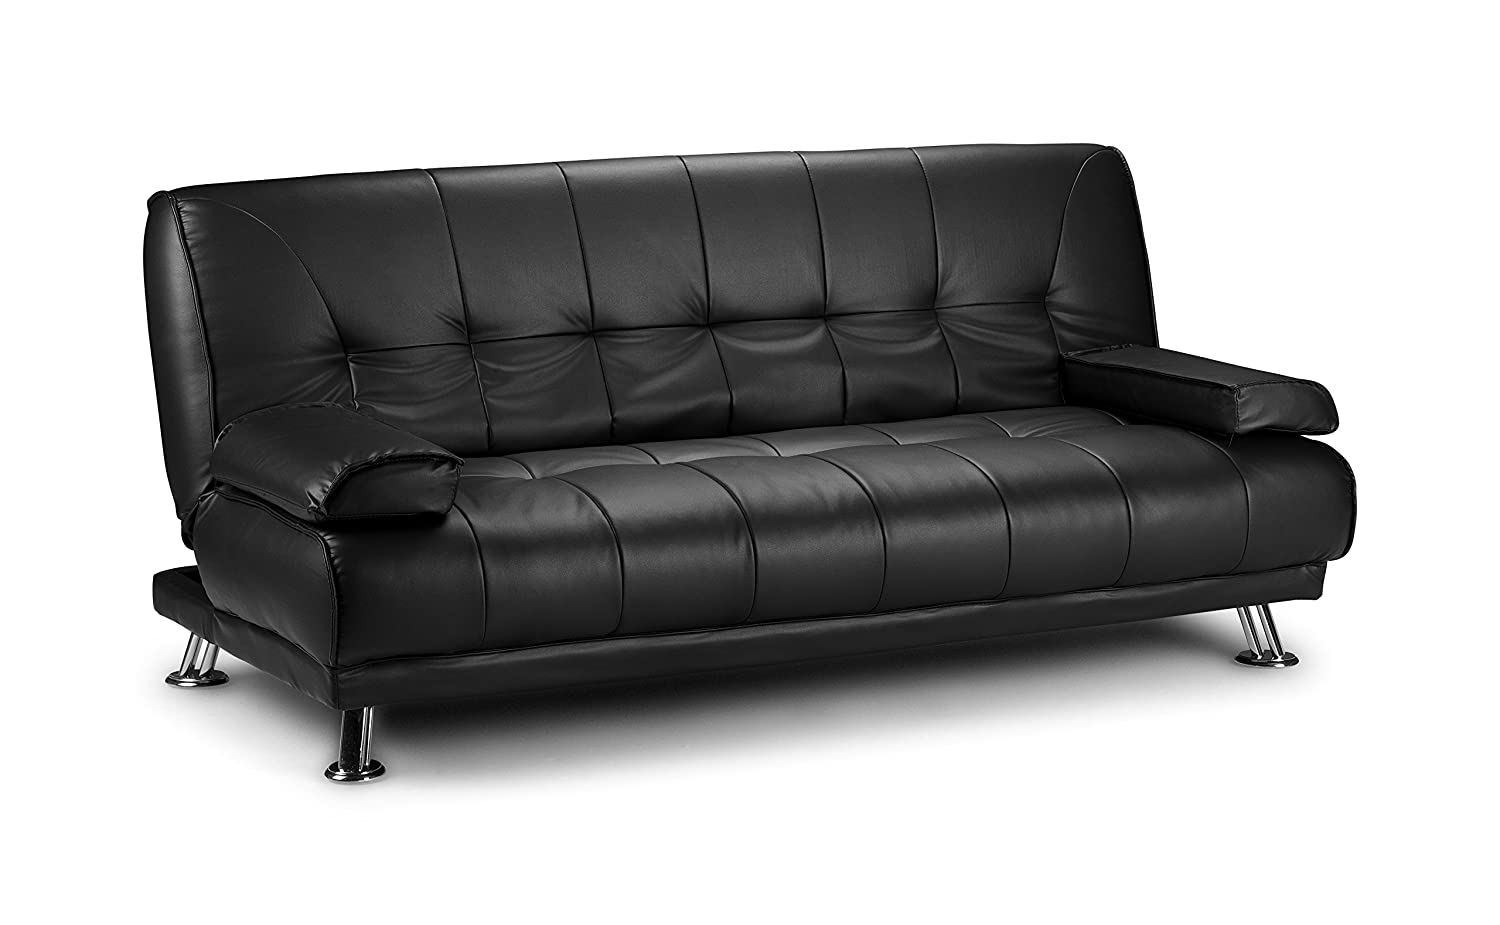 D & G Sofas VENICE CLICK CLACK FAUX LEATHER SOFA BED - BLACK, BROWN AND RED (Black) Express-furniture-warehouse